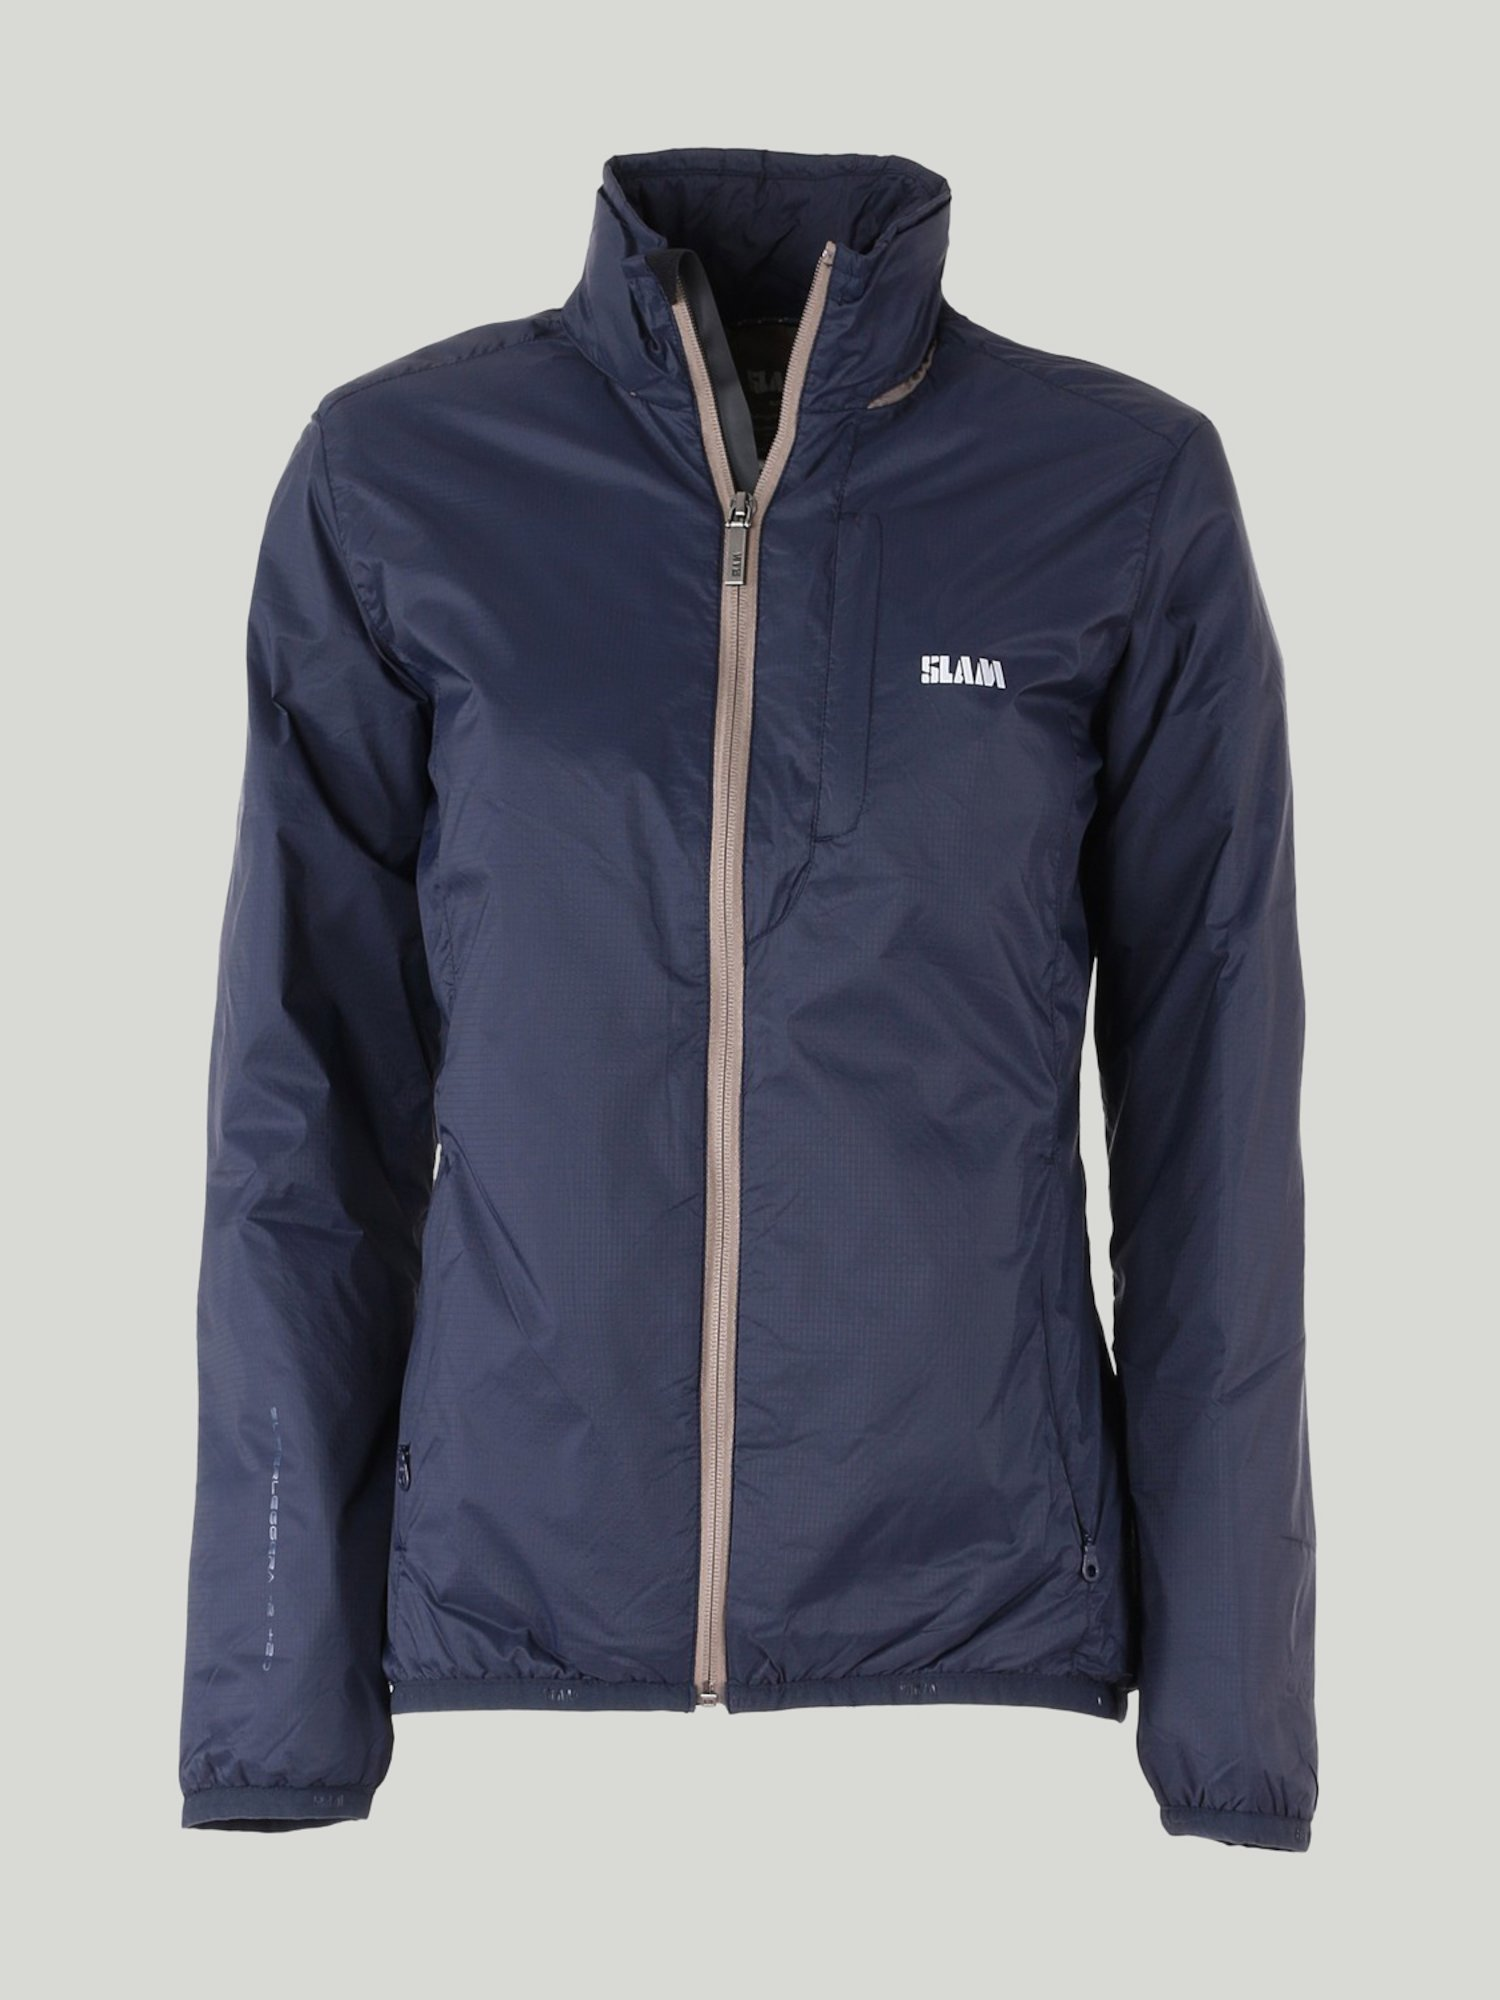 Blow Padded Jacket  - Ocean Blue